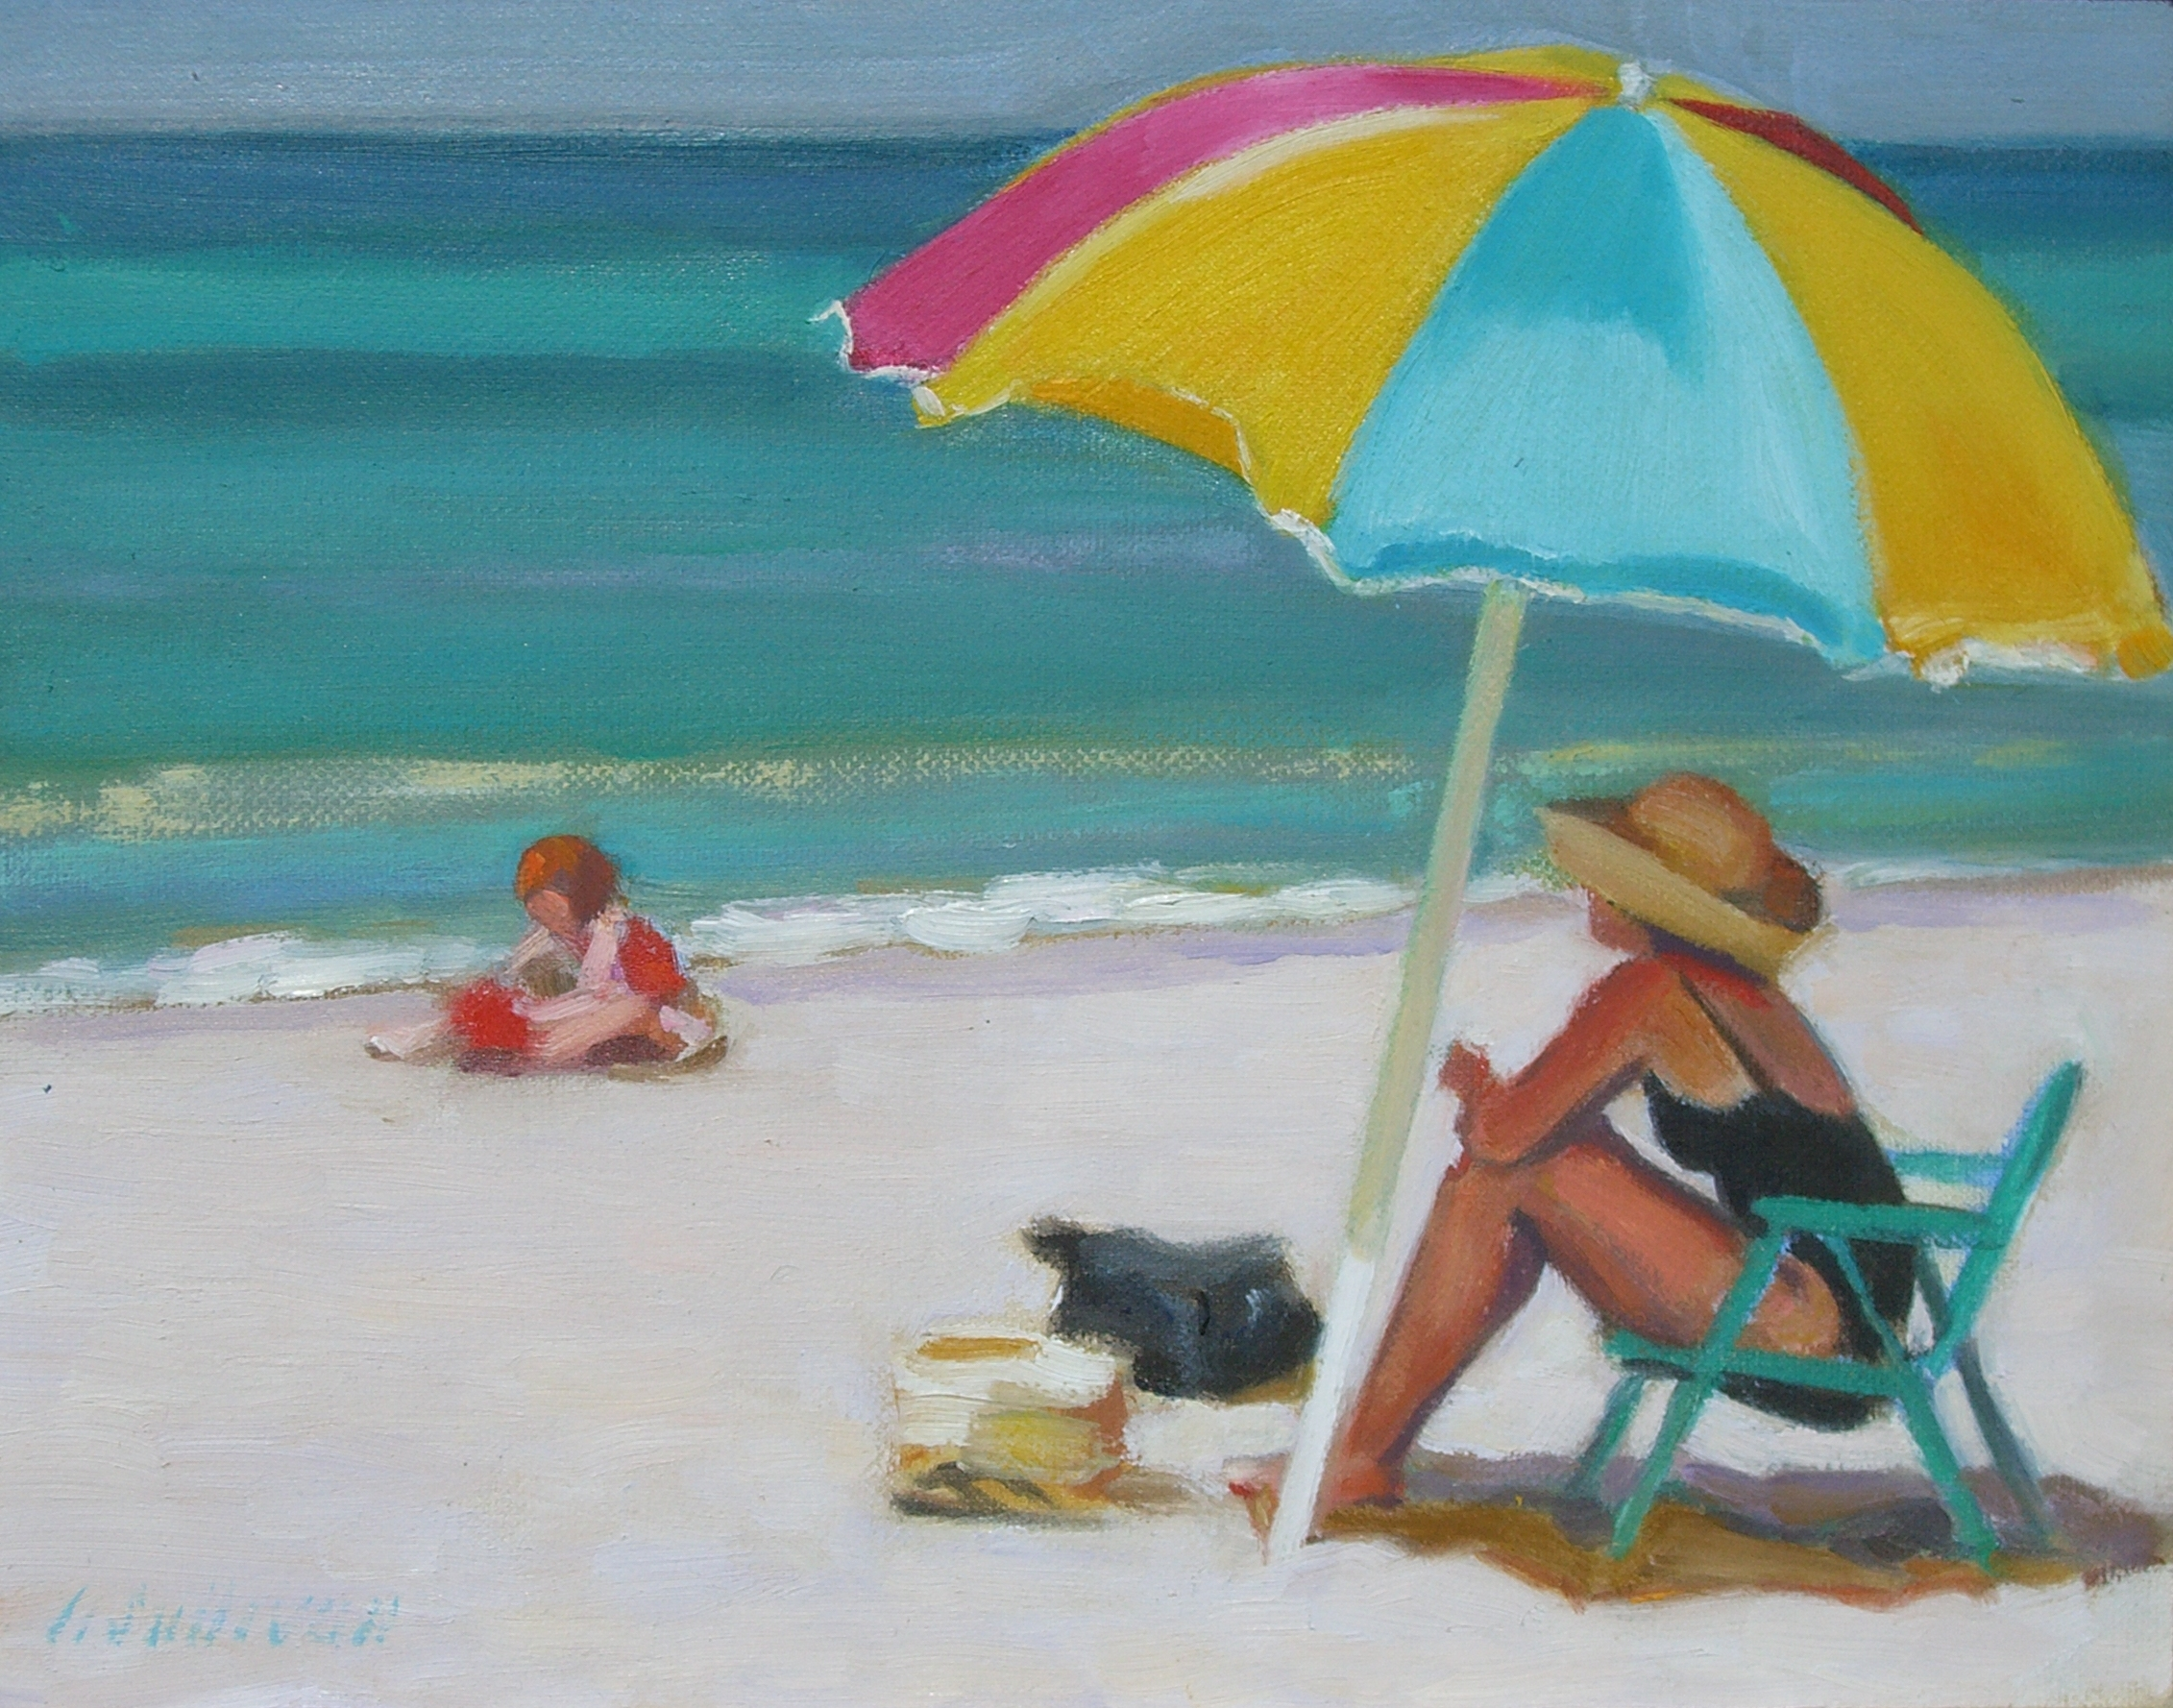 Beach Umbrella Art - Compare Prices on Beach Umbrella Art in the